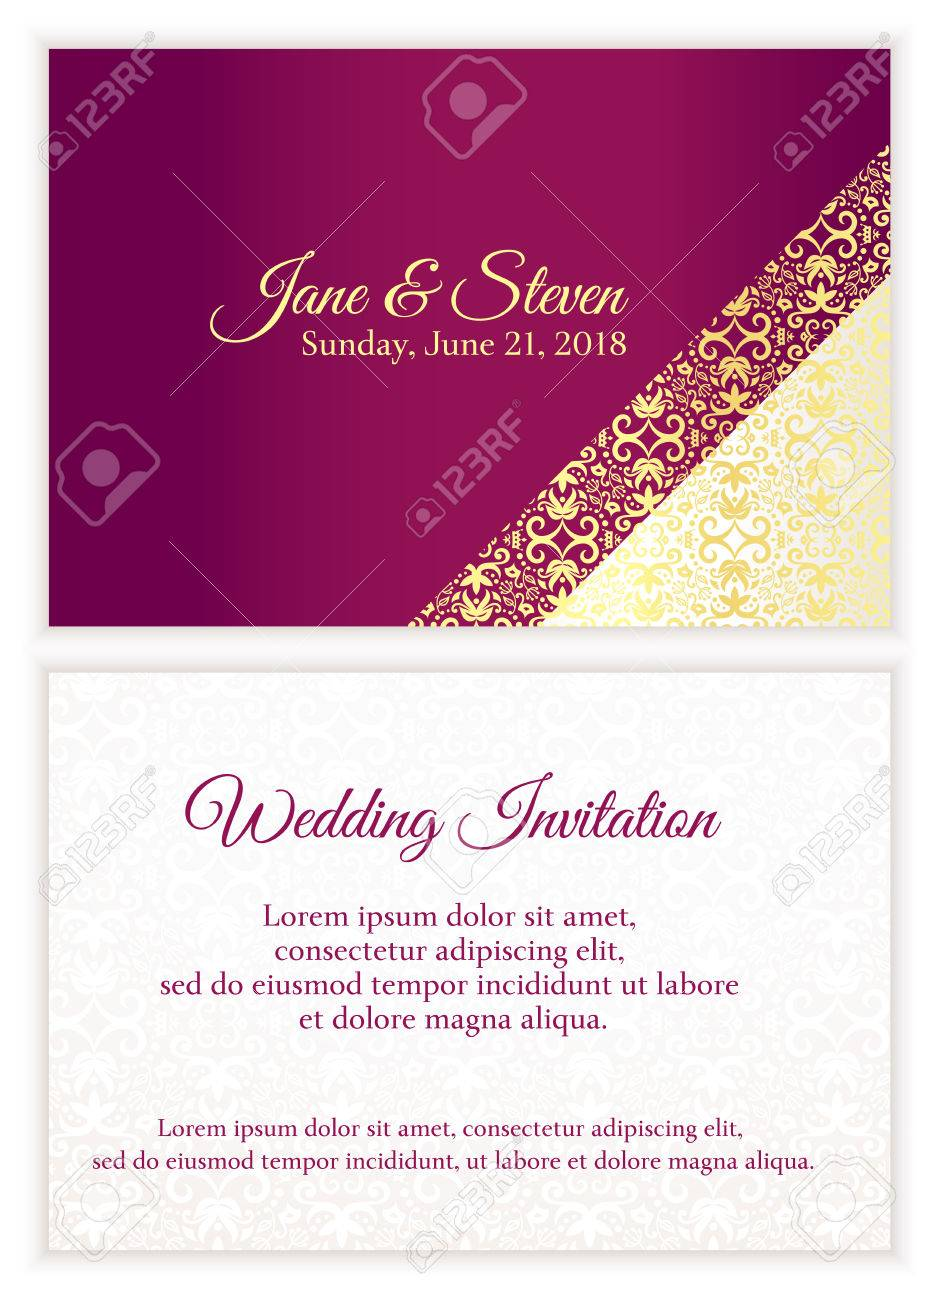 Purple Wedding Invitation With Luxury Golden Lace In Corner And ...